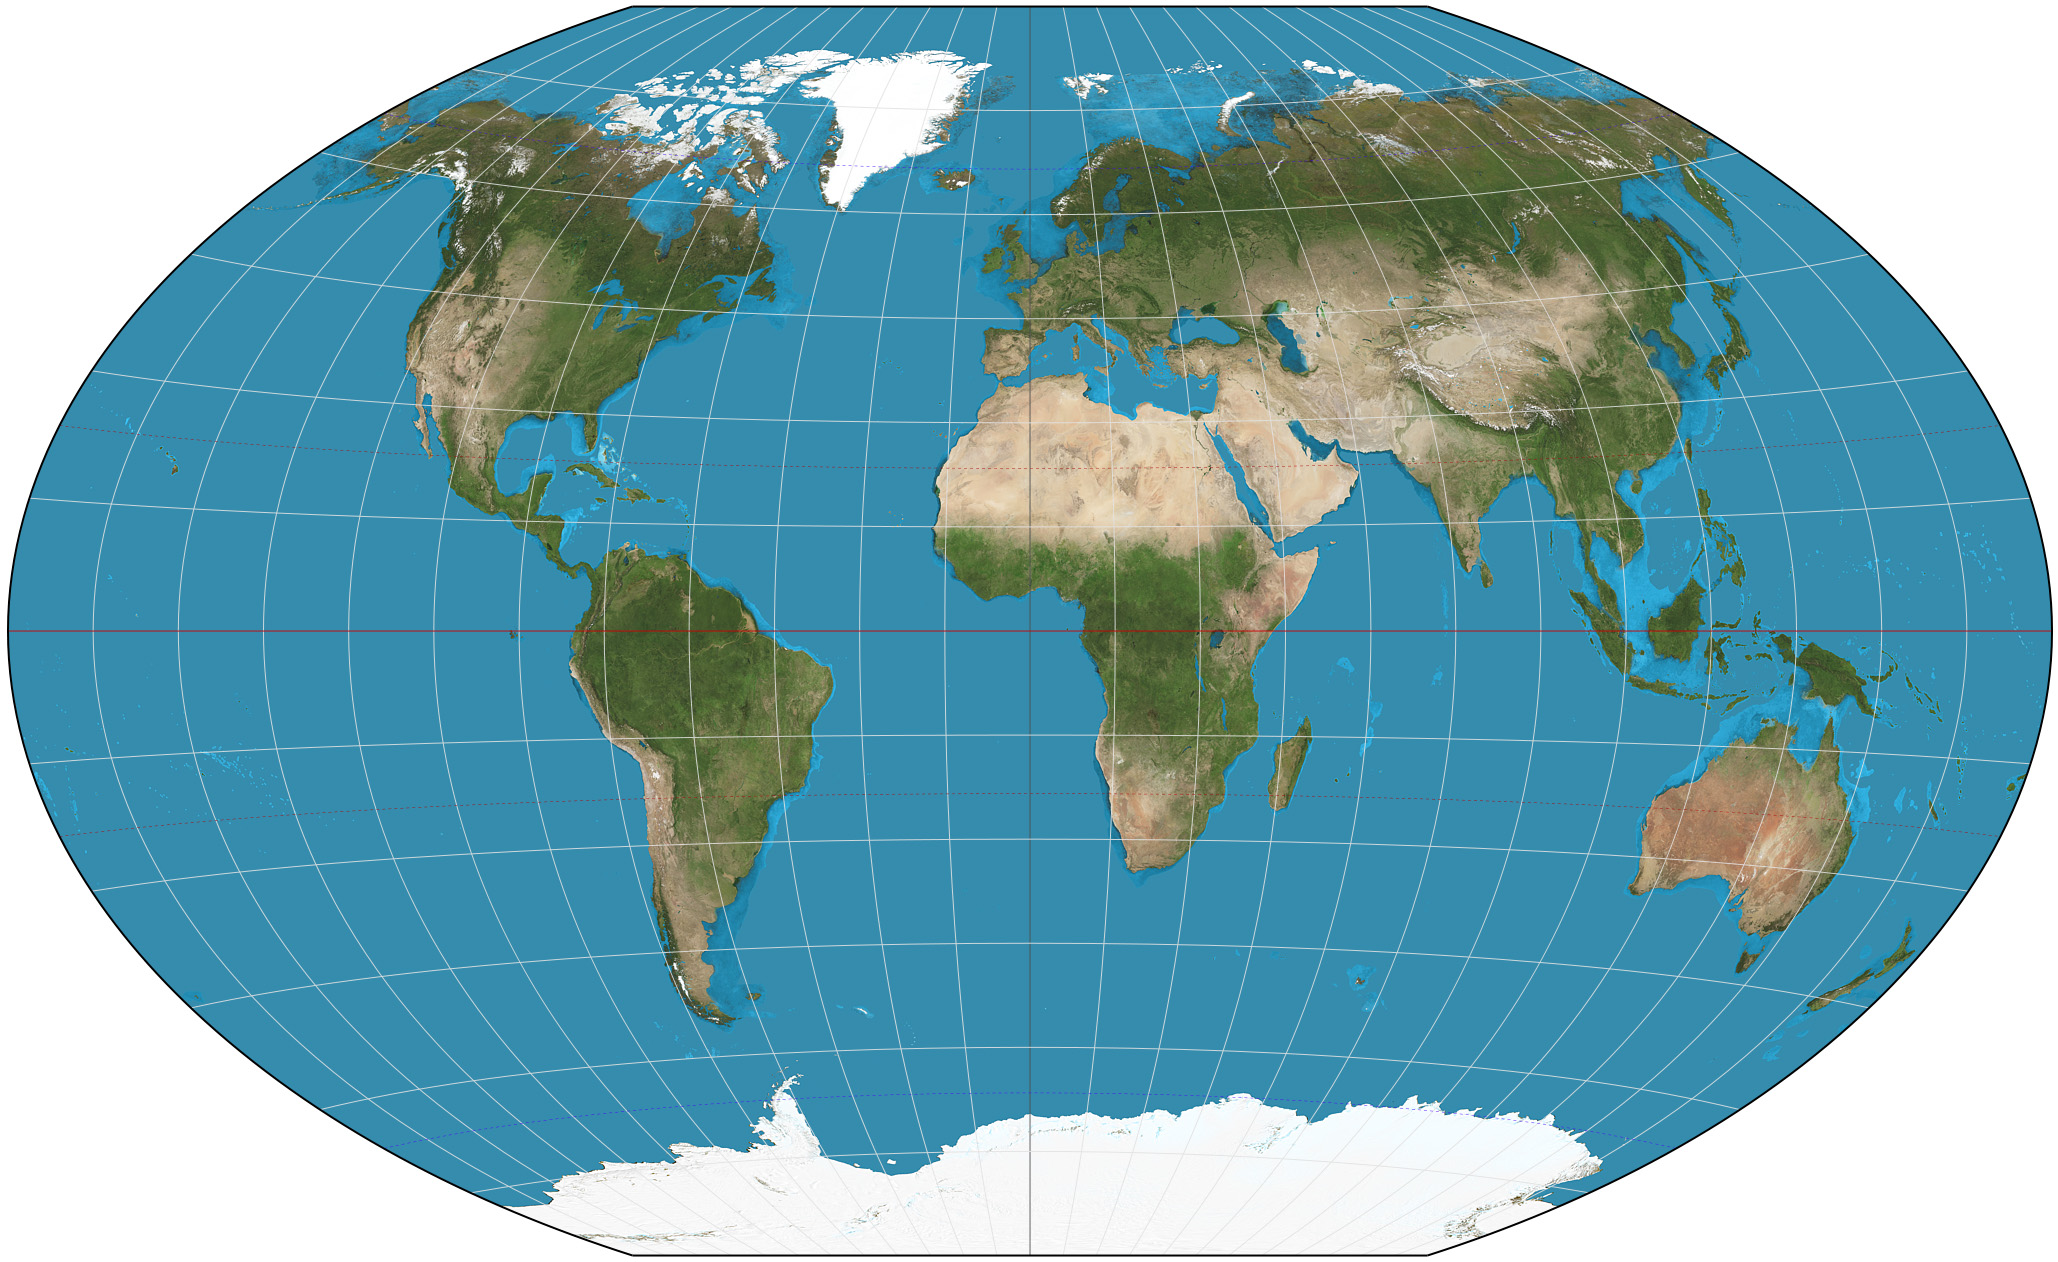 World map wikipedia a world map on the winkel tripel projection a low error map projection adopted by the national geographic society for reference maps gumiabroncs